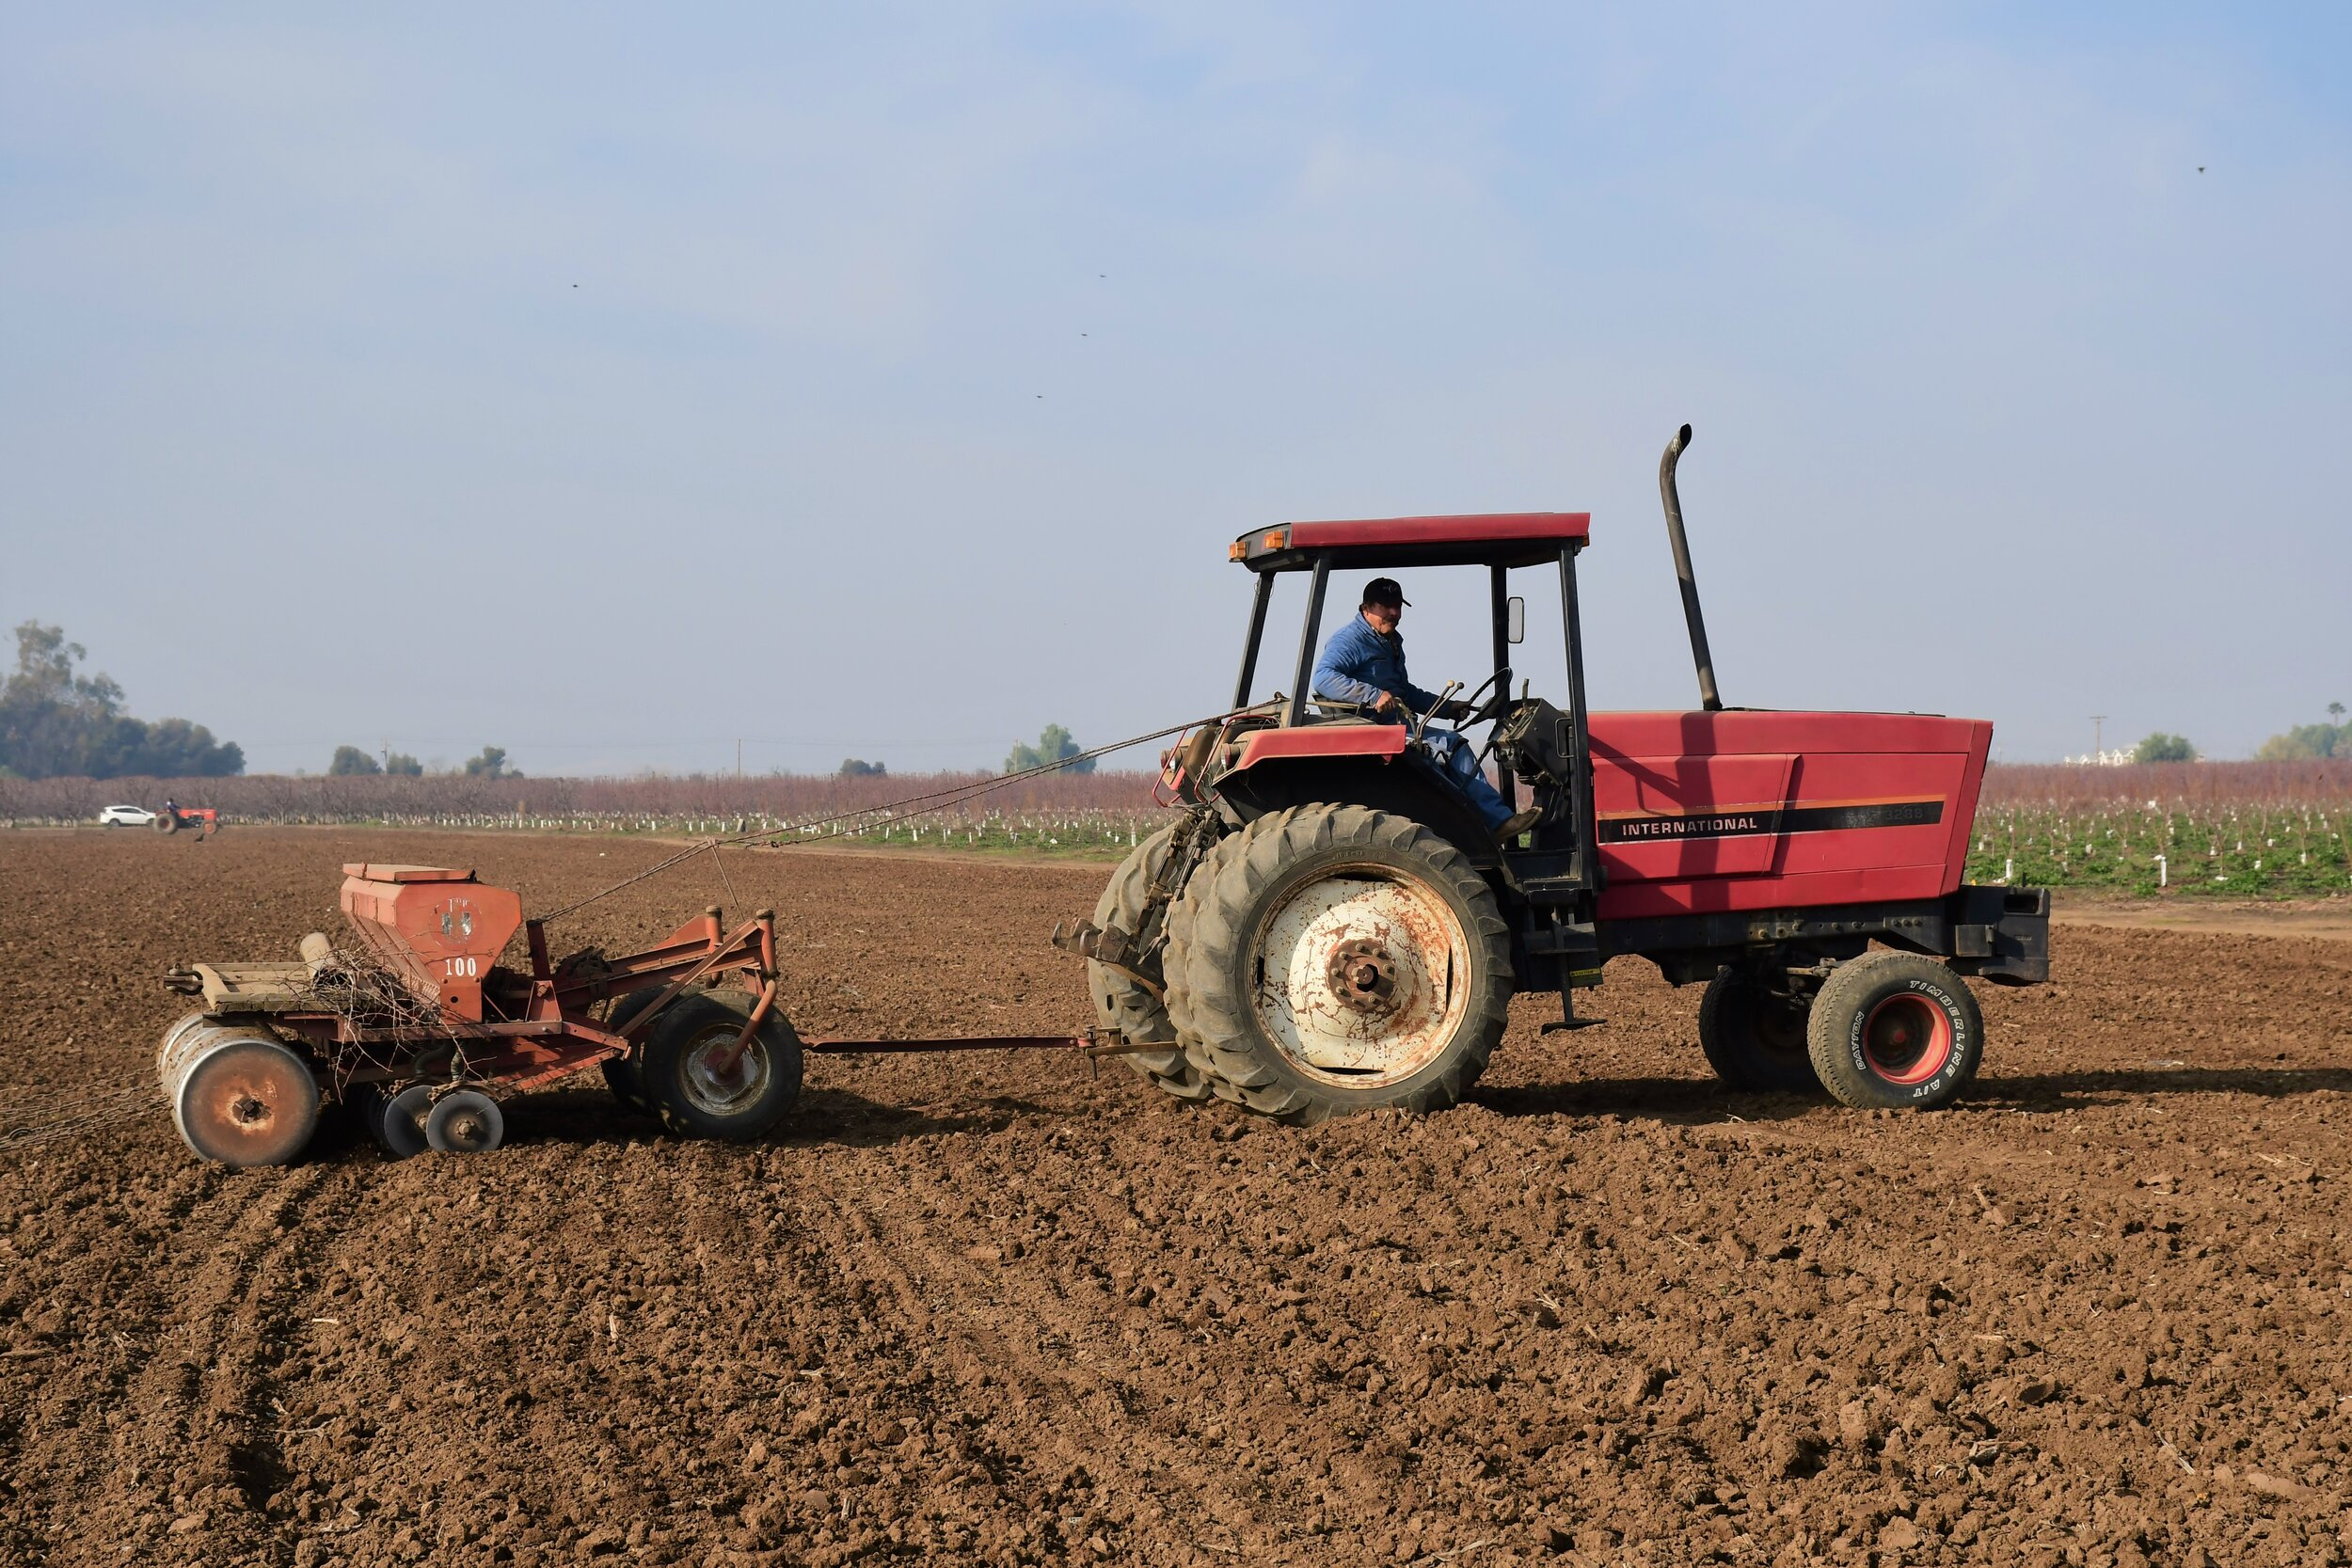 Sonora Wheat Planting 6 - Tractor.jpg